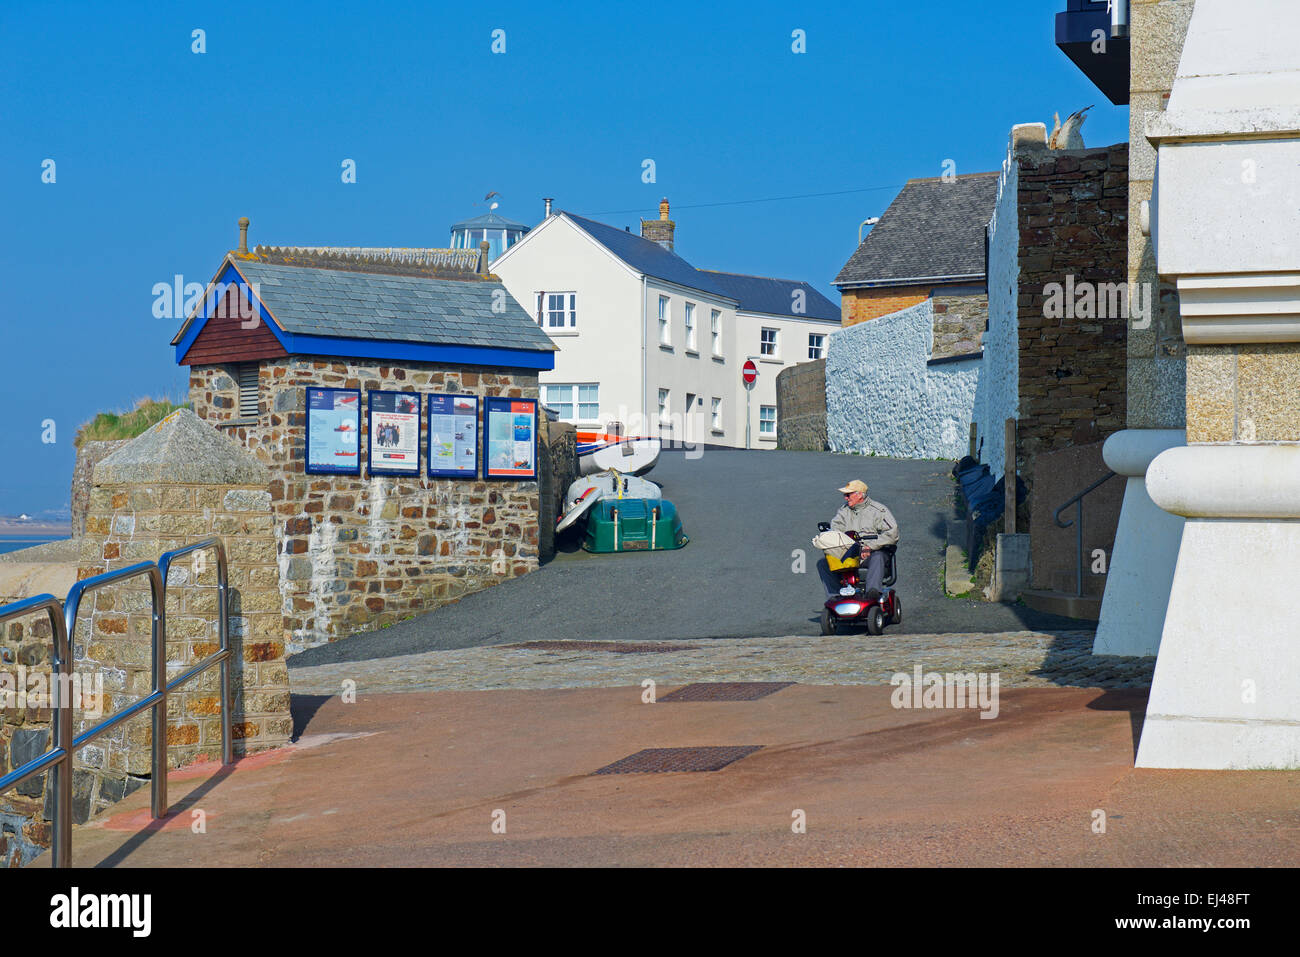 Man sur la mobilité scooter, Appledore, Devon, Angleterre Royaume-uni Photo Stock